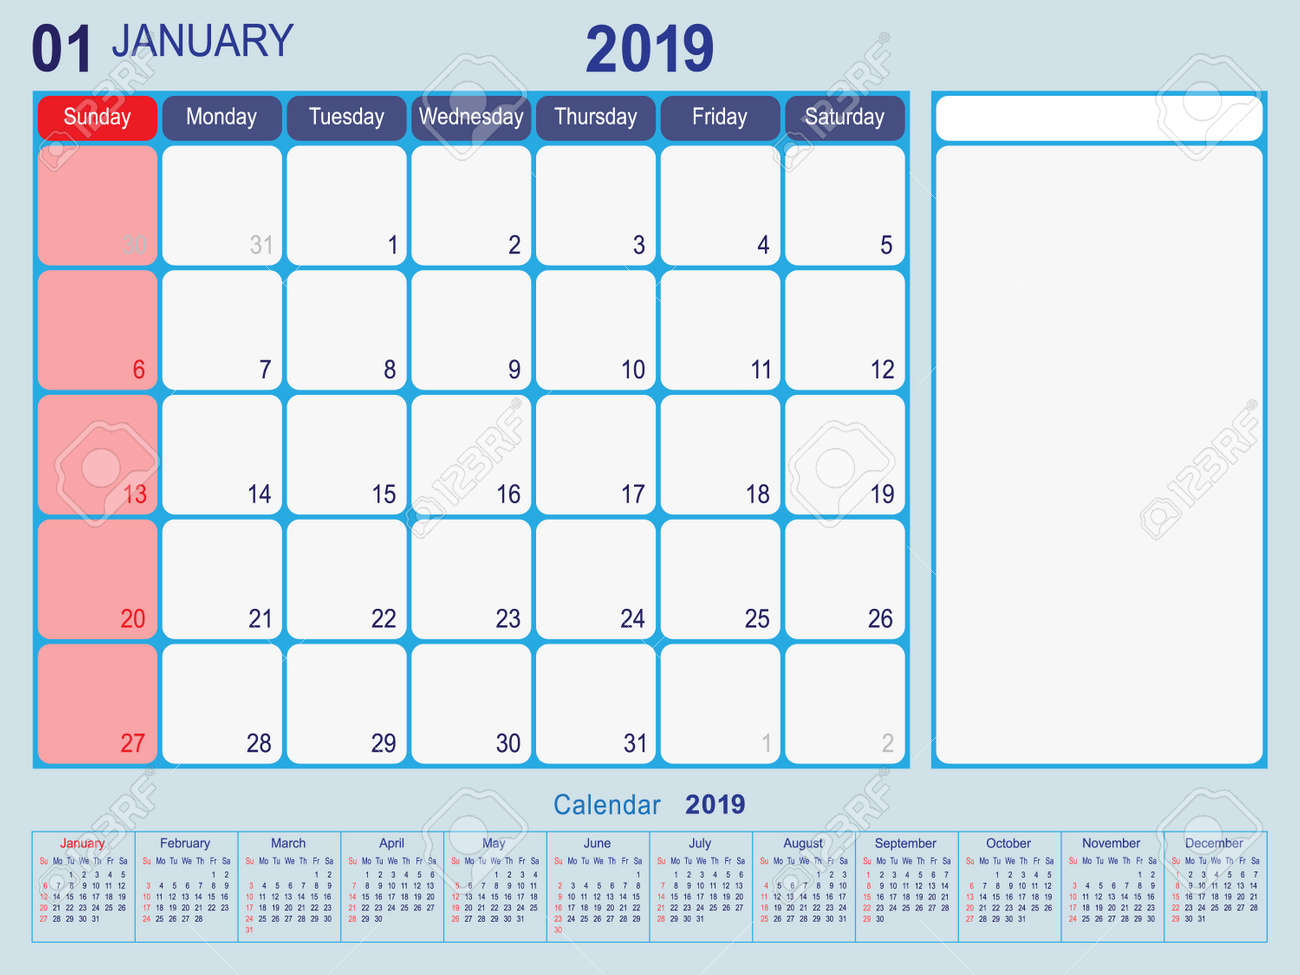 Year 2019 January Planner - A Monthly Planner Calendar For January..  Royalty Free Cliparts, Vectors, And Stock Illustration. Image 111005283.